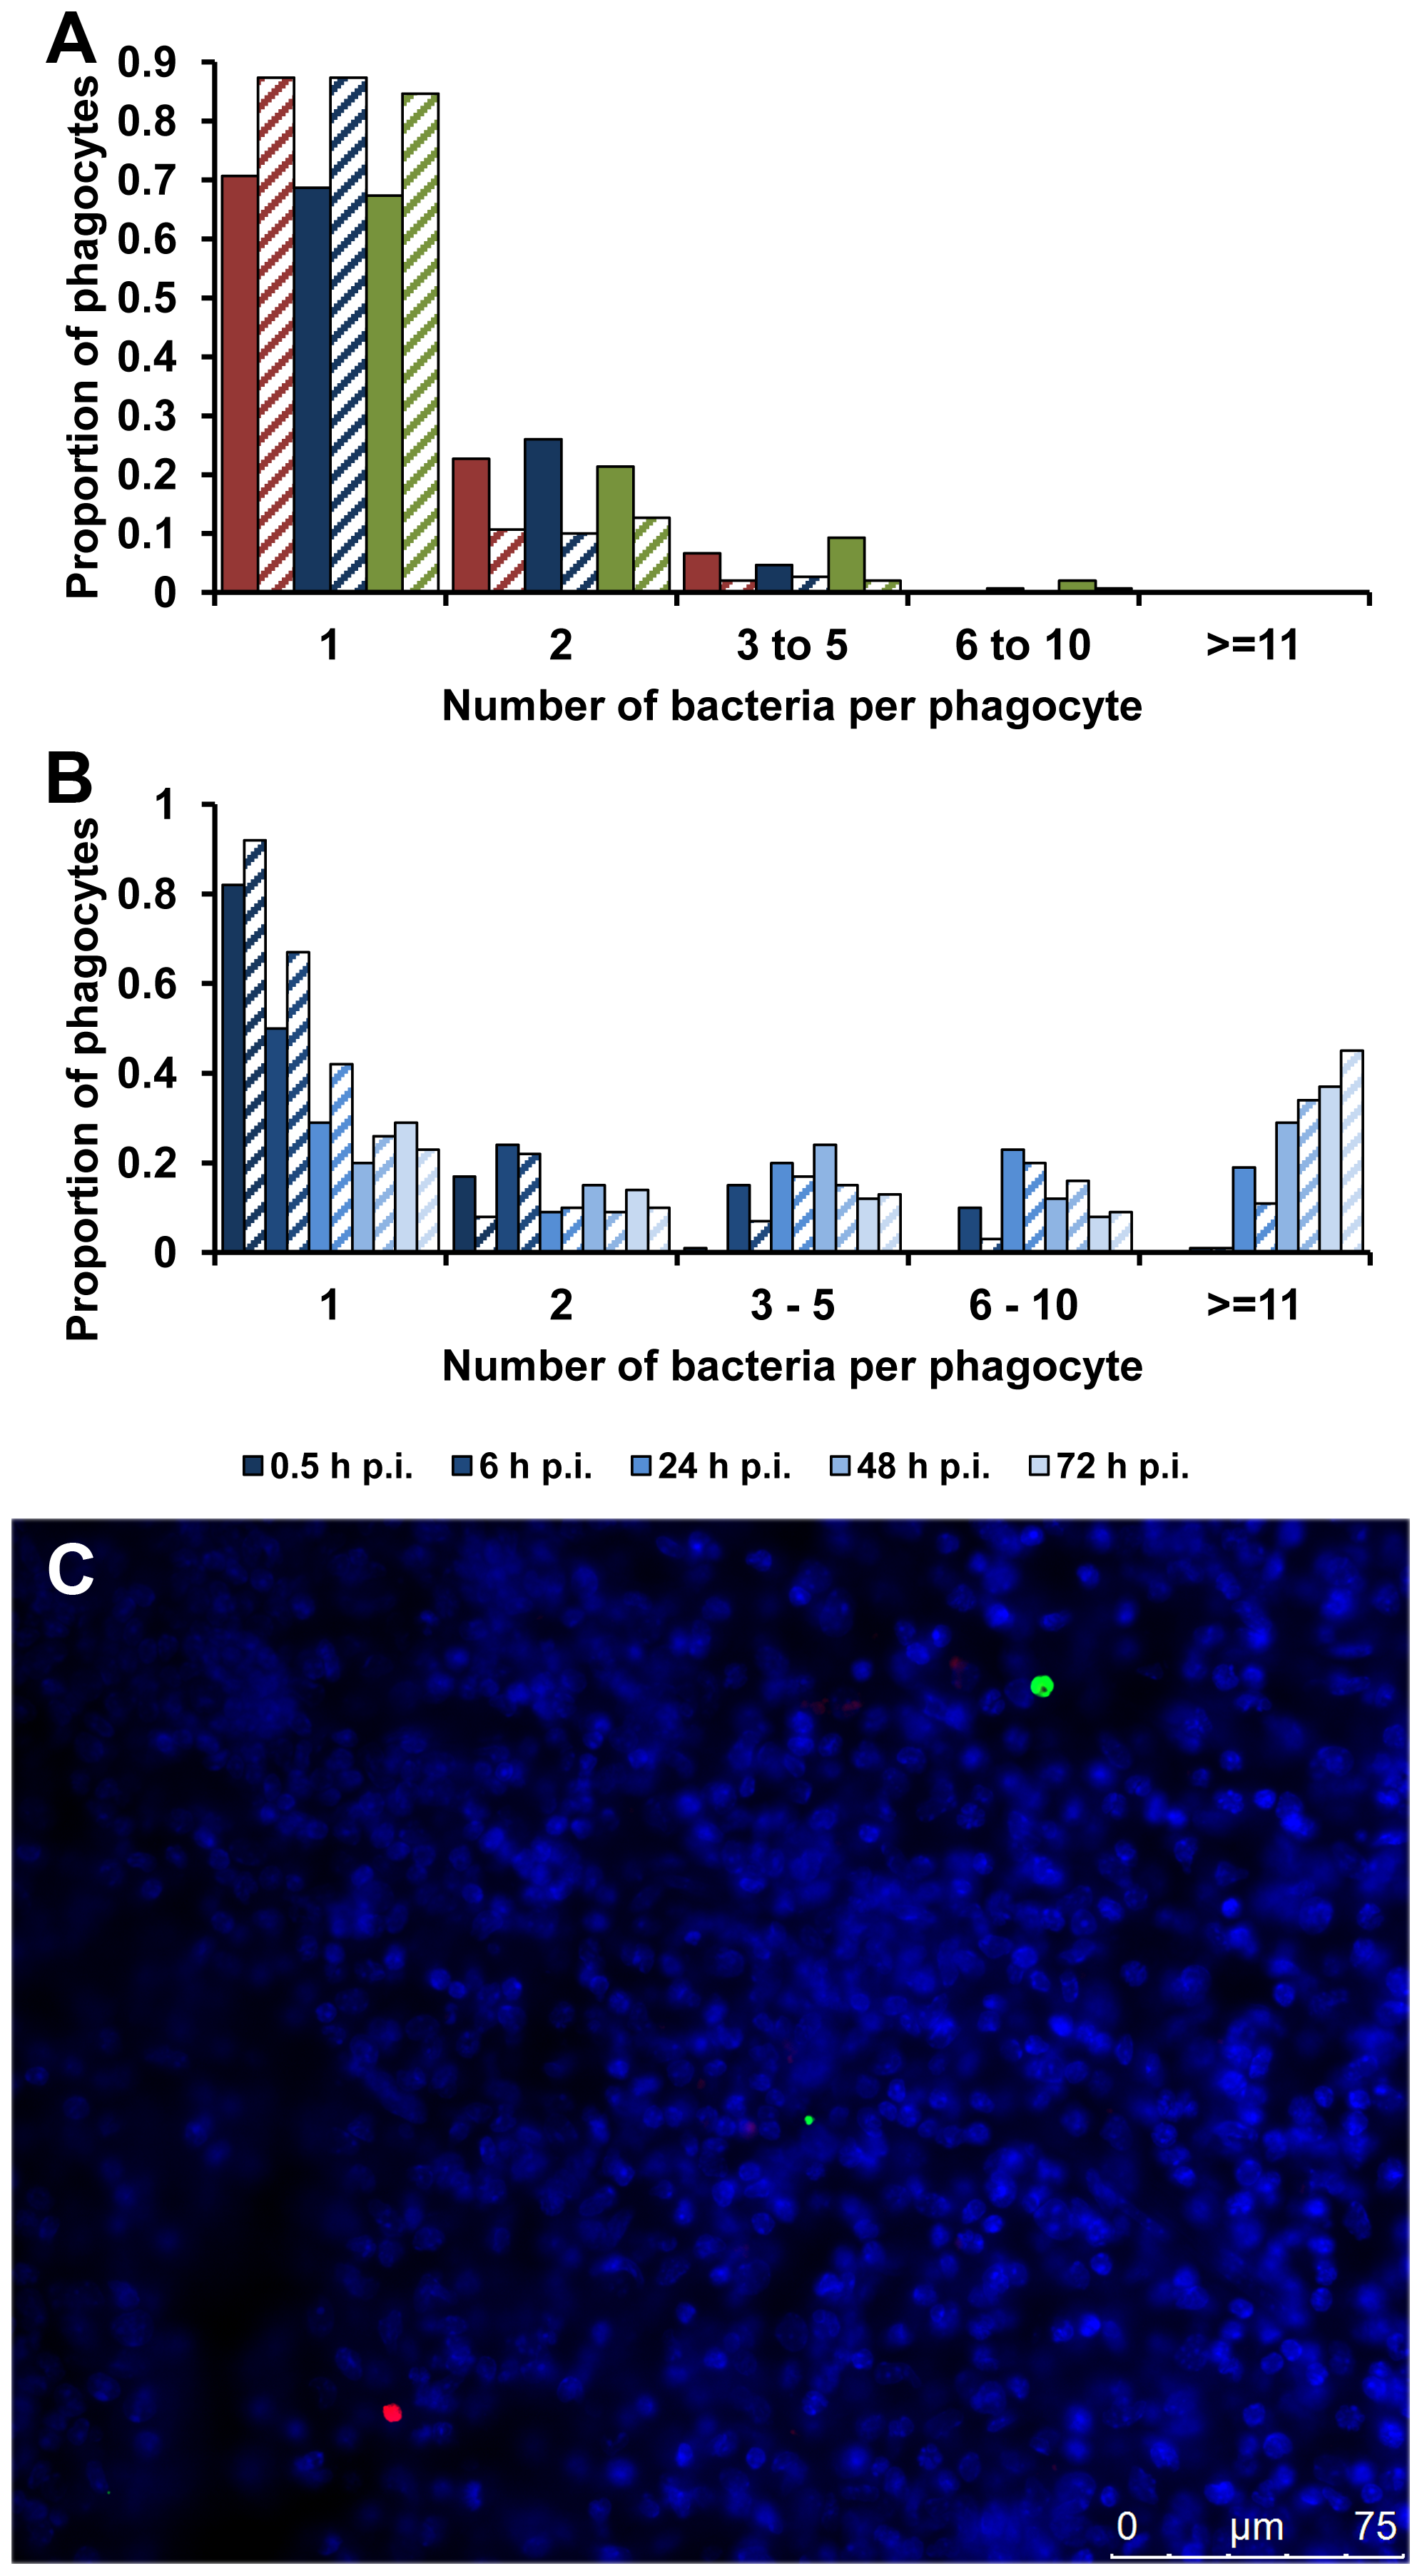 Accumulation of SPI-2 T3SS mutants inside cells is due to clonal expansion of a bacterium.